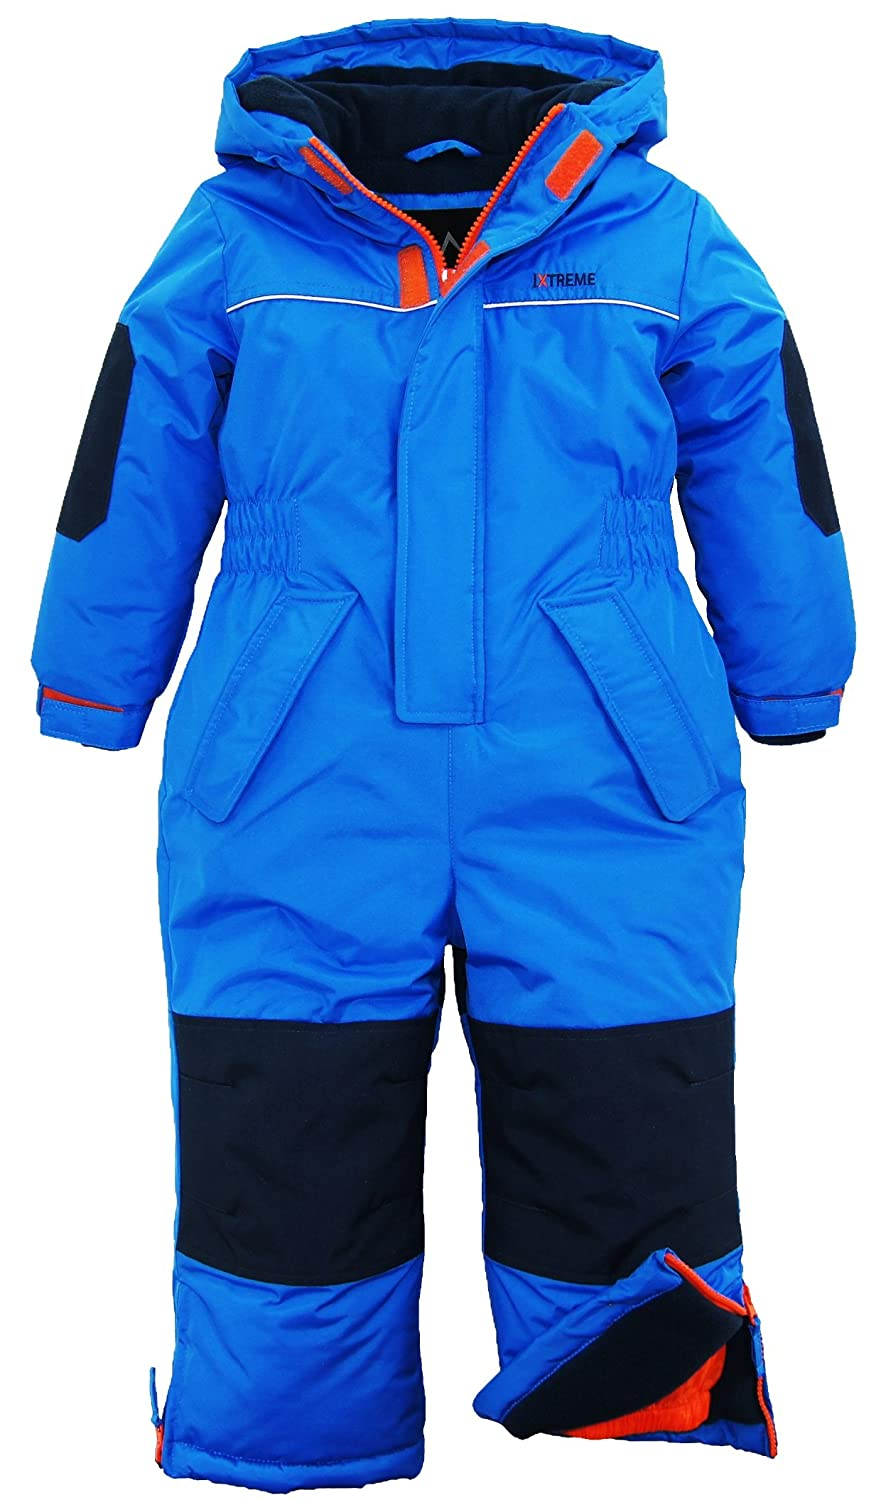 iXtreme Little Boys' Snowmobile One Piece Winter Snowsuit Ski Suit Snowboarding, Blue, 7